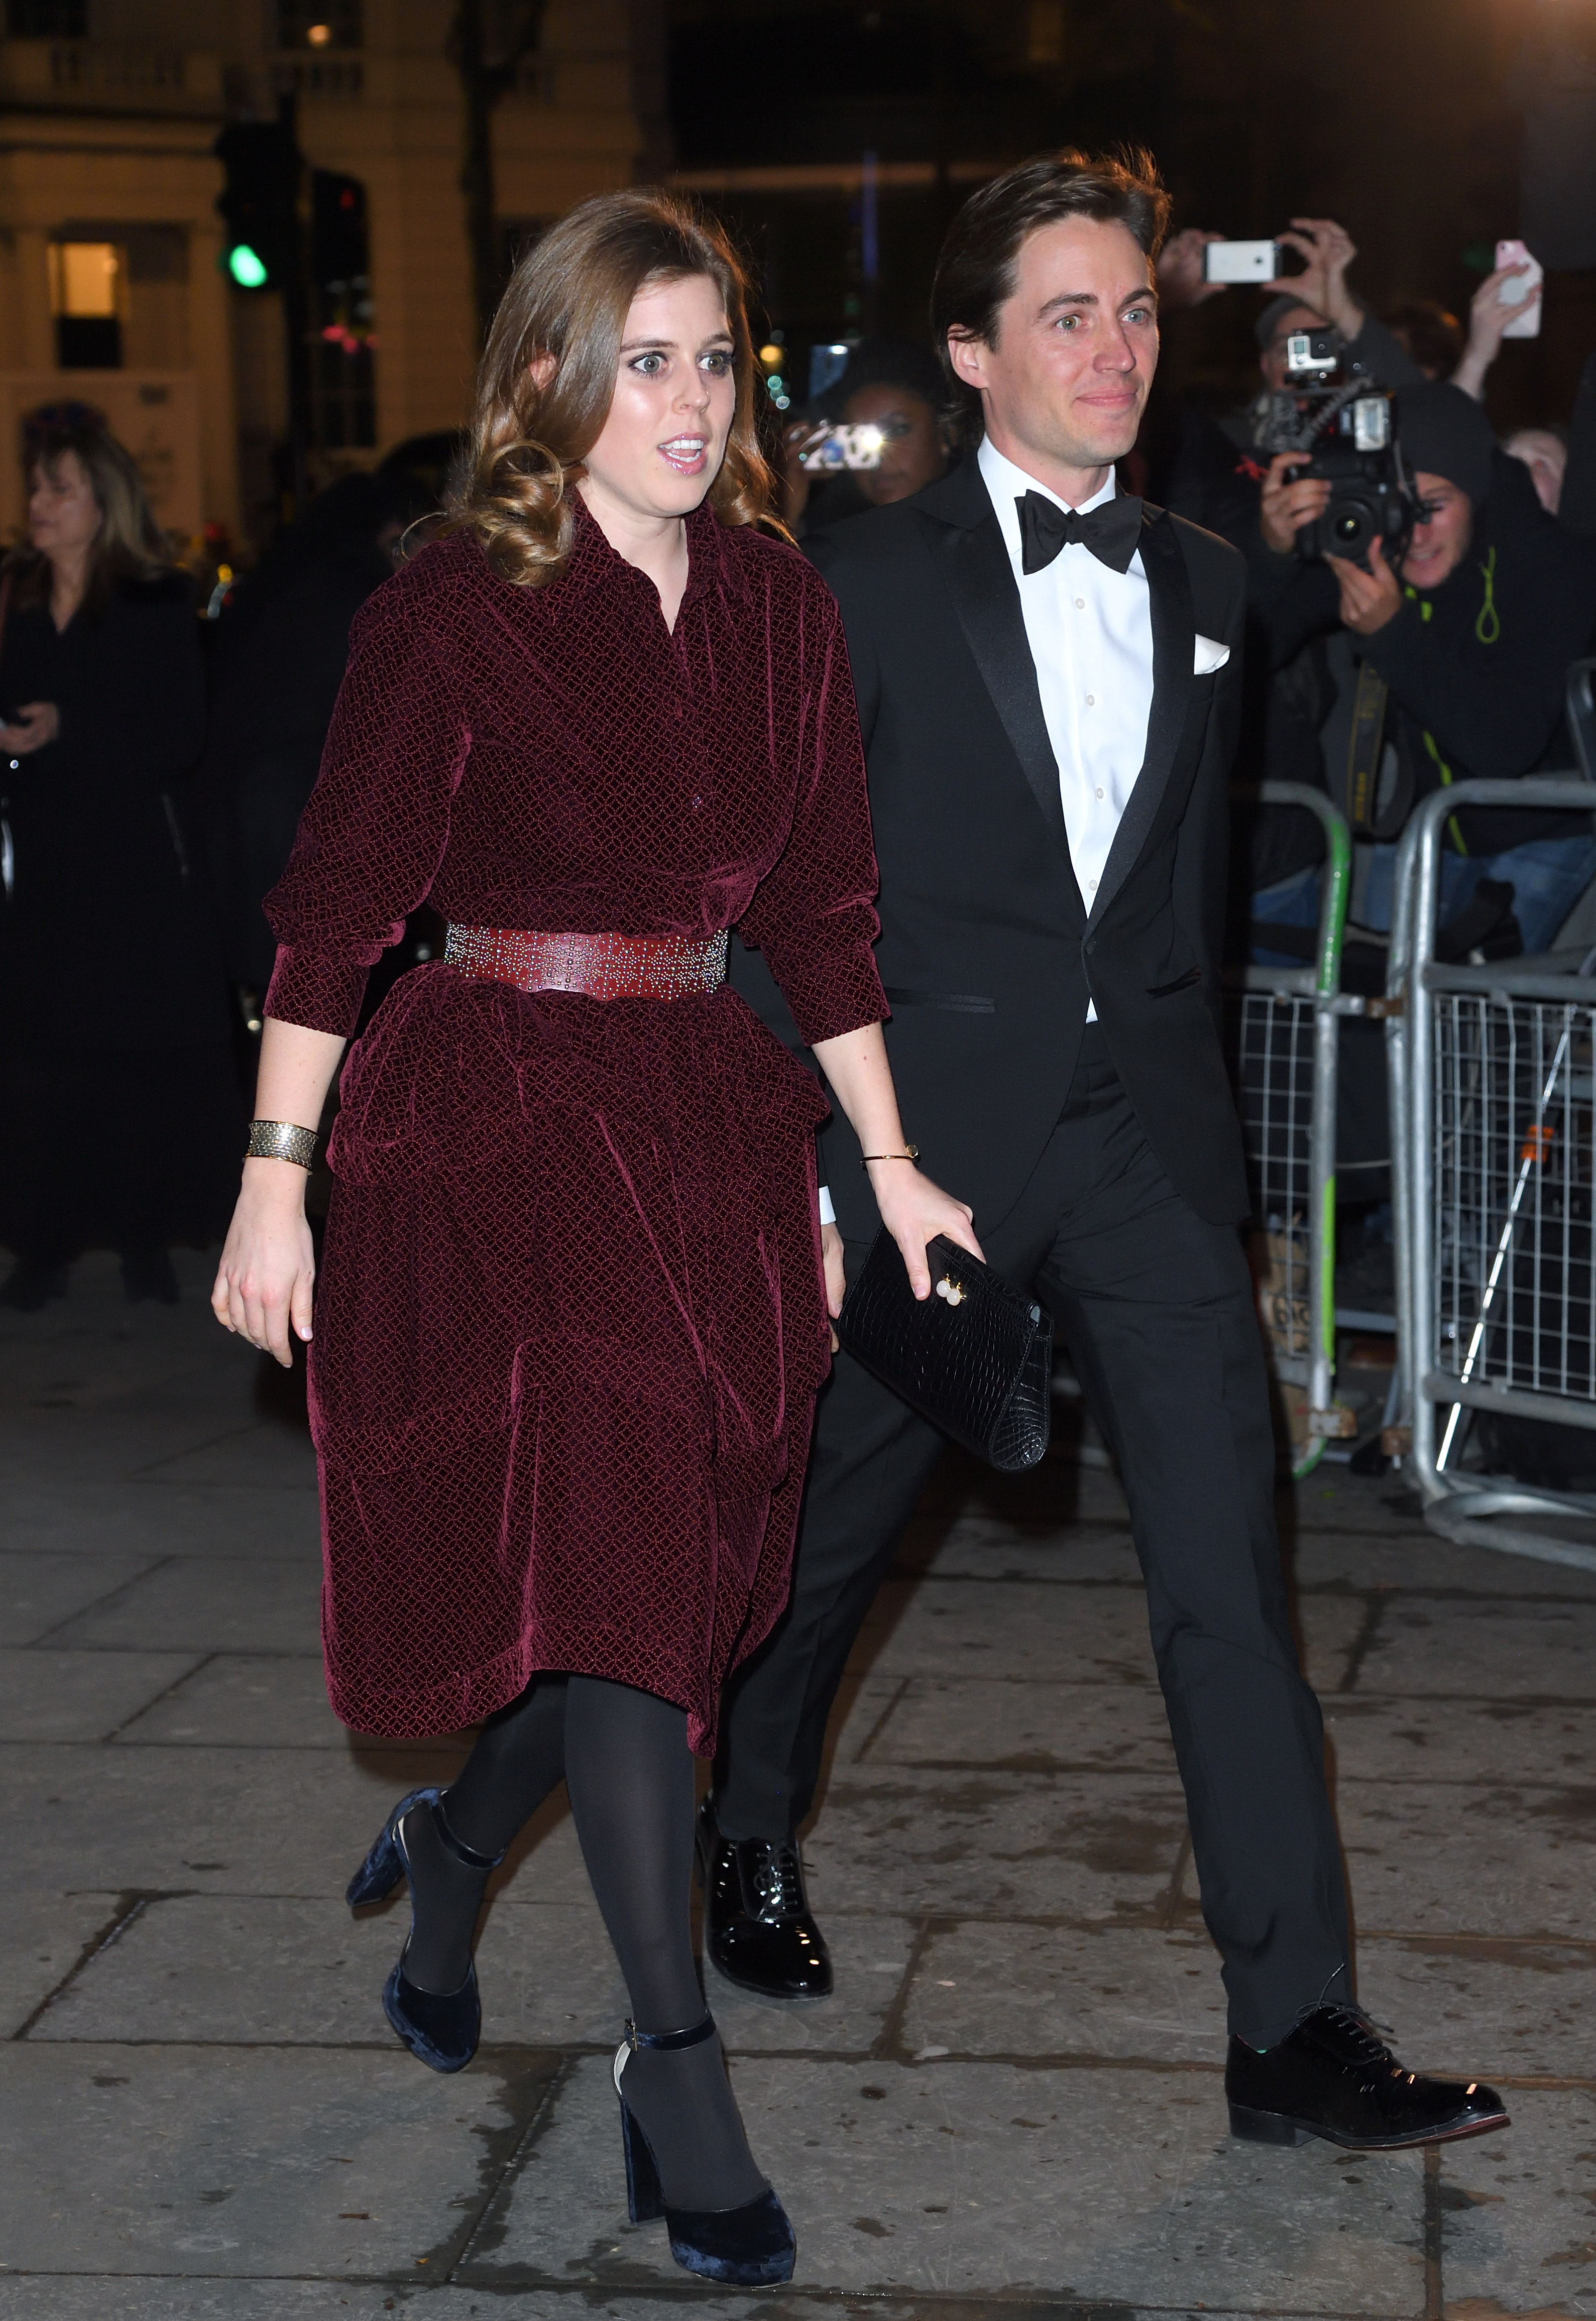 princess beatrice walking with fiancé